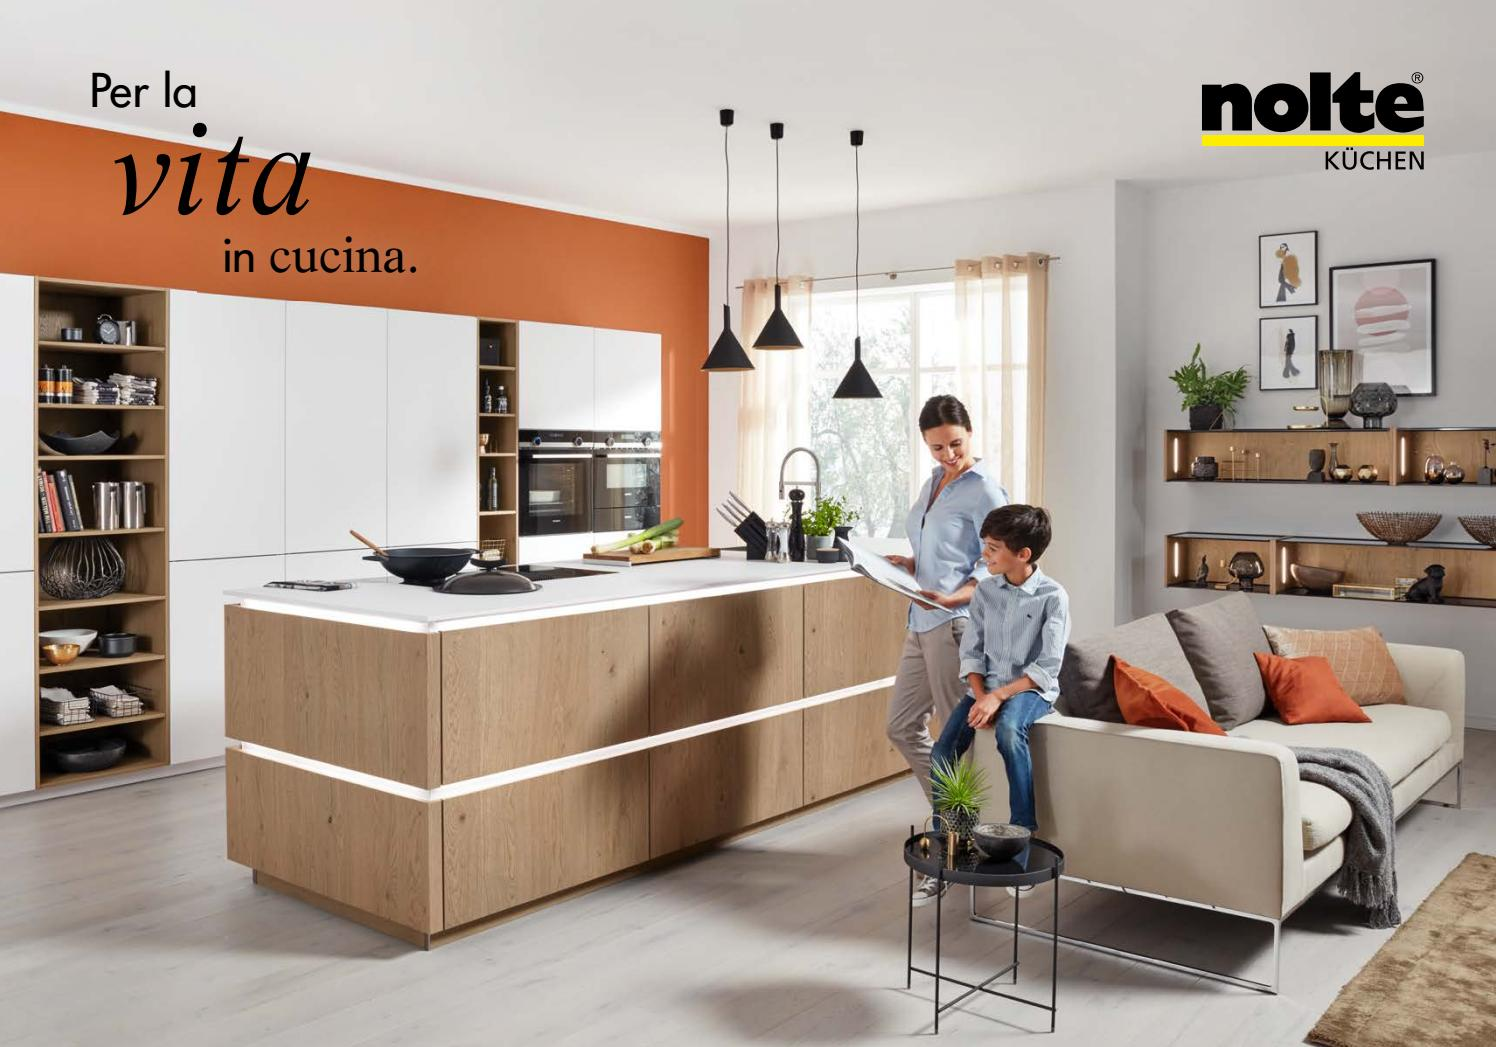 Nolte cucine catalogo 2019 by mobilpro issuu for Cucine di pregio